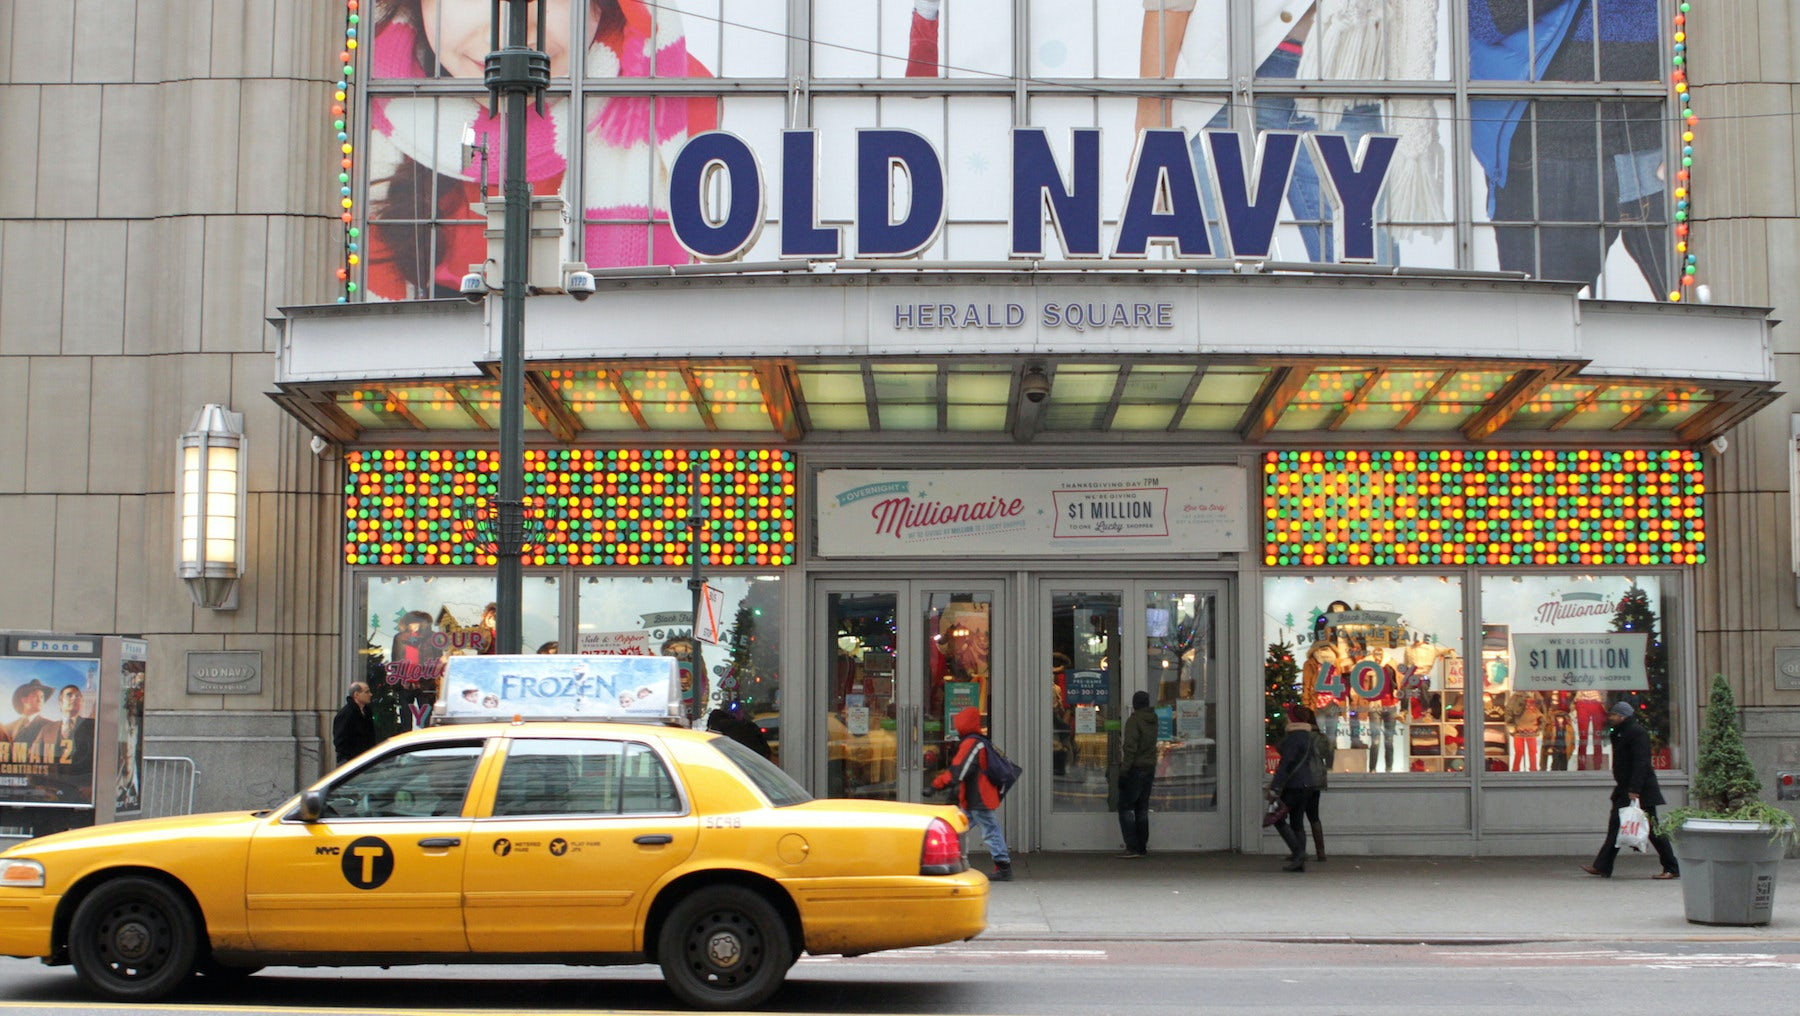 Gap Inc. Shifts Focus Towards Old Navy and Athleta